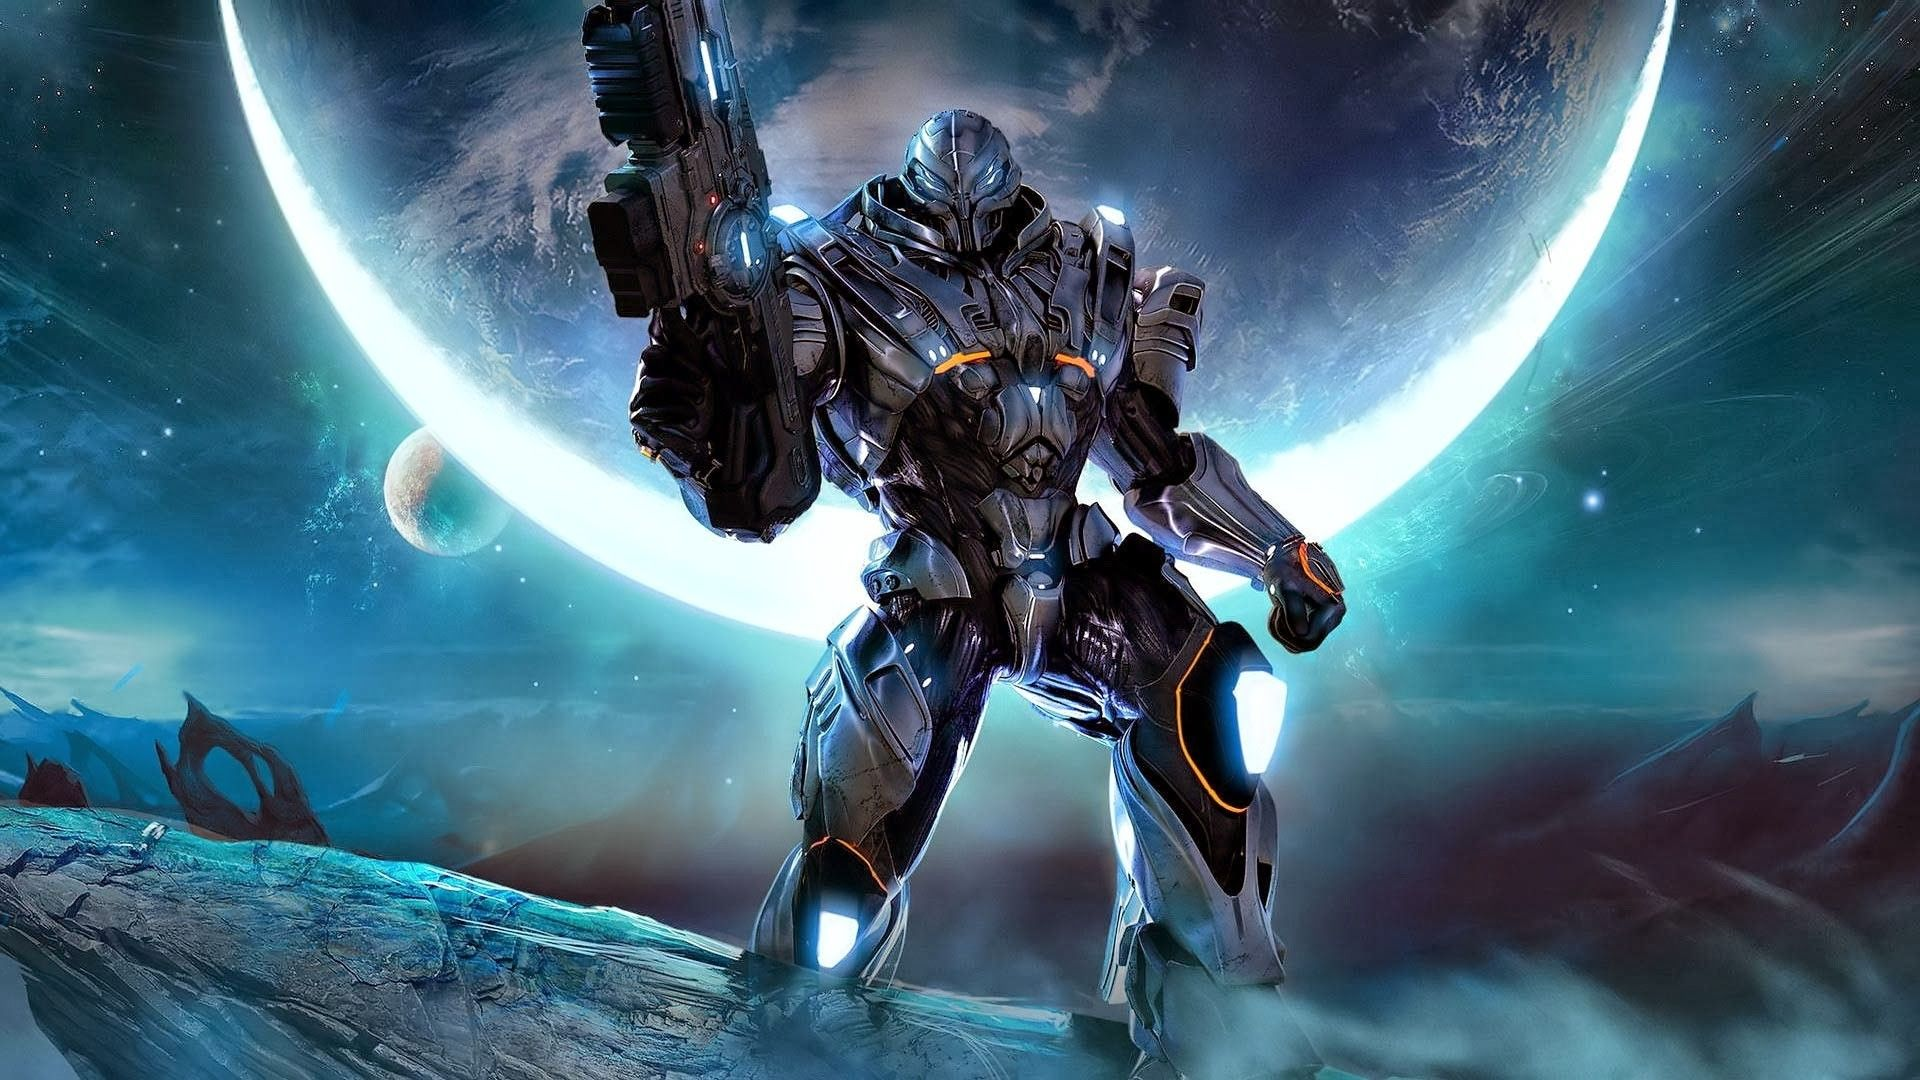 Section 8 Prejudice Science Fiction Robot Space Wallpaper Warriors Wallpaper Gaming Wallpapers Action Wallpaper